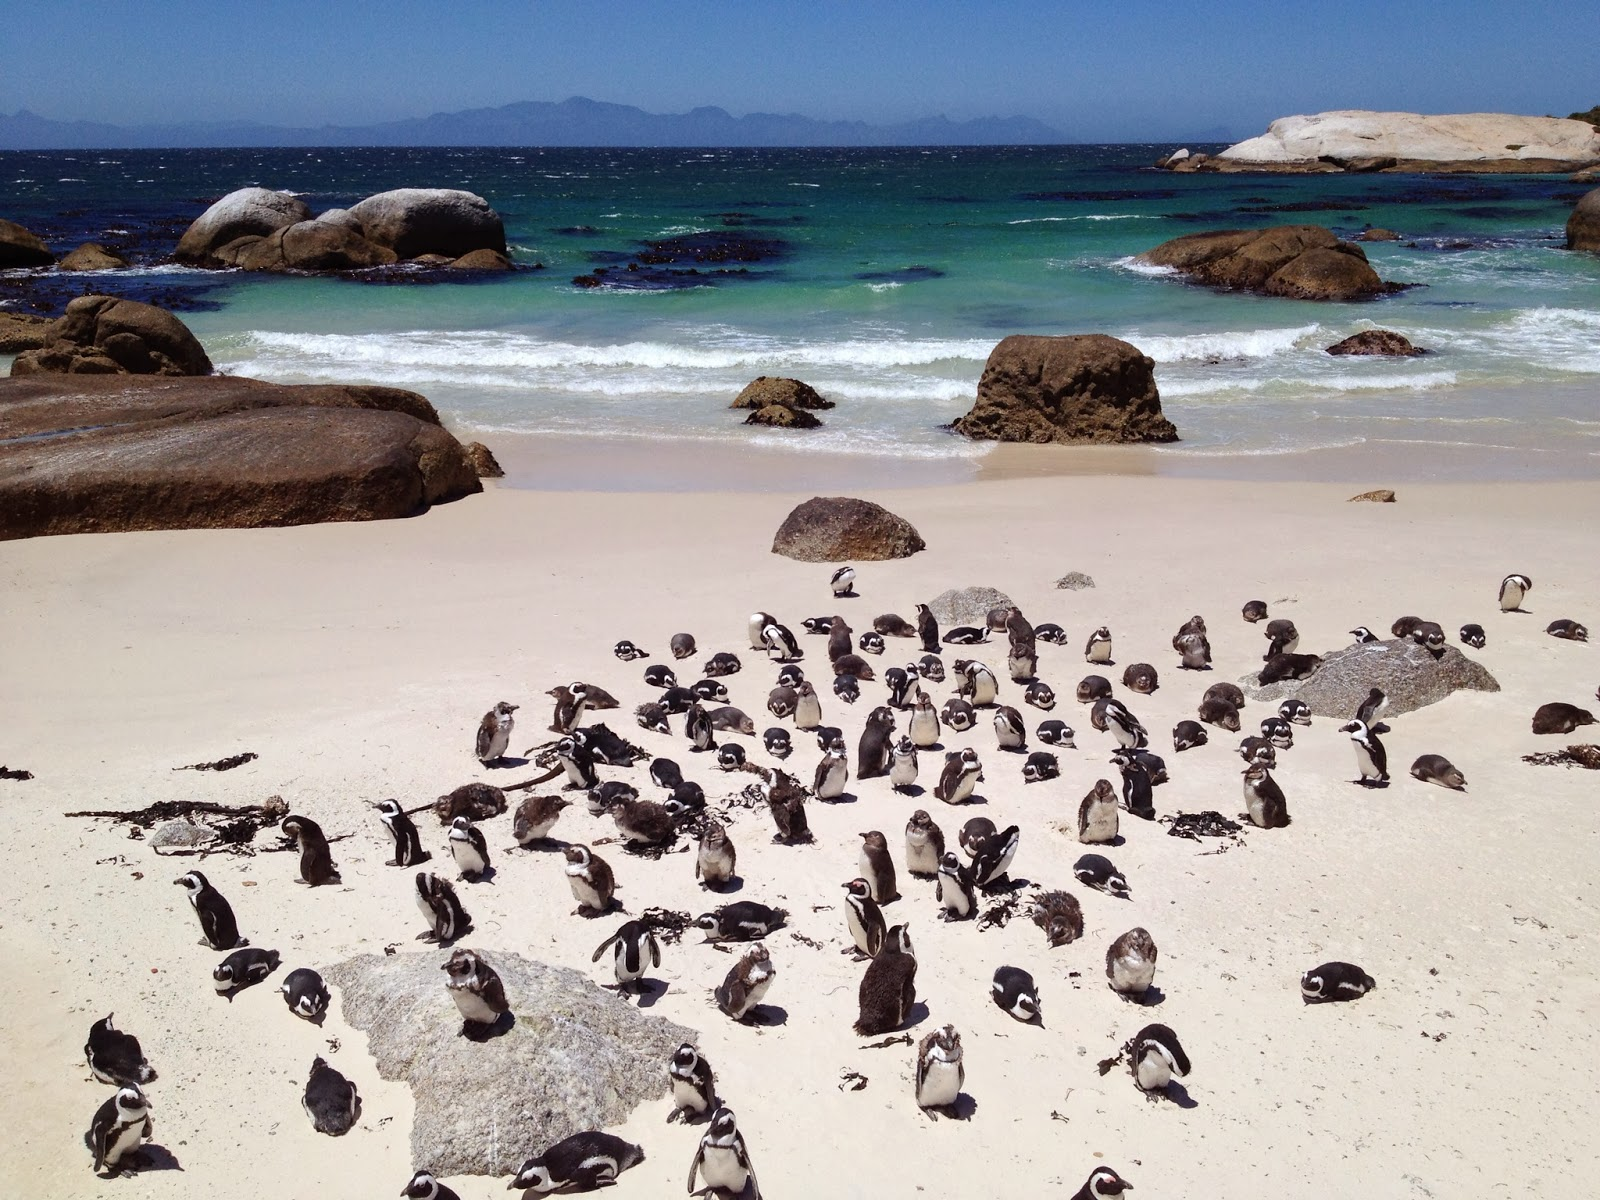 Cape Point Tour - Penguins at Boulders Beach